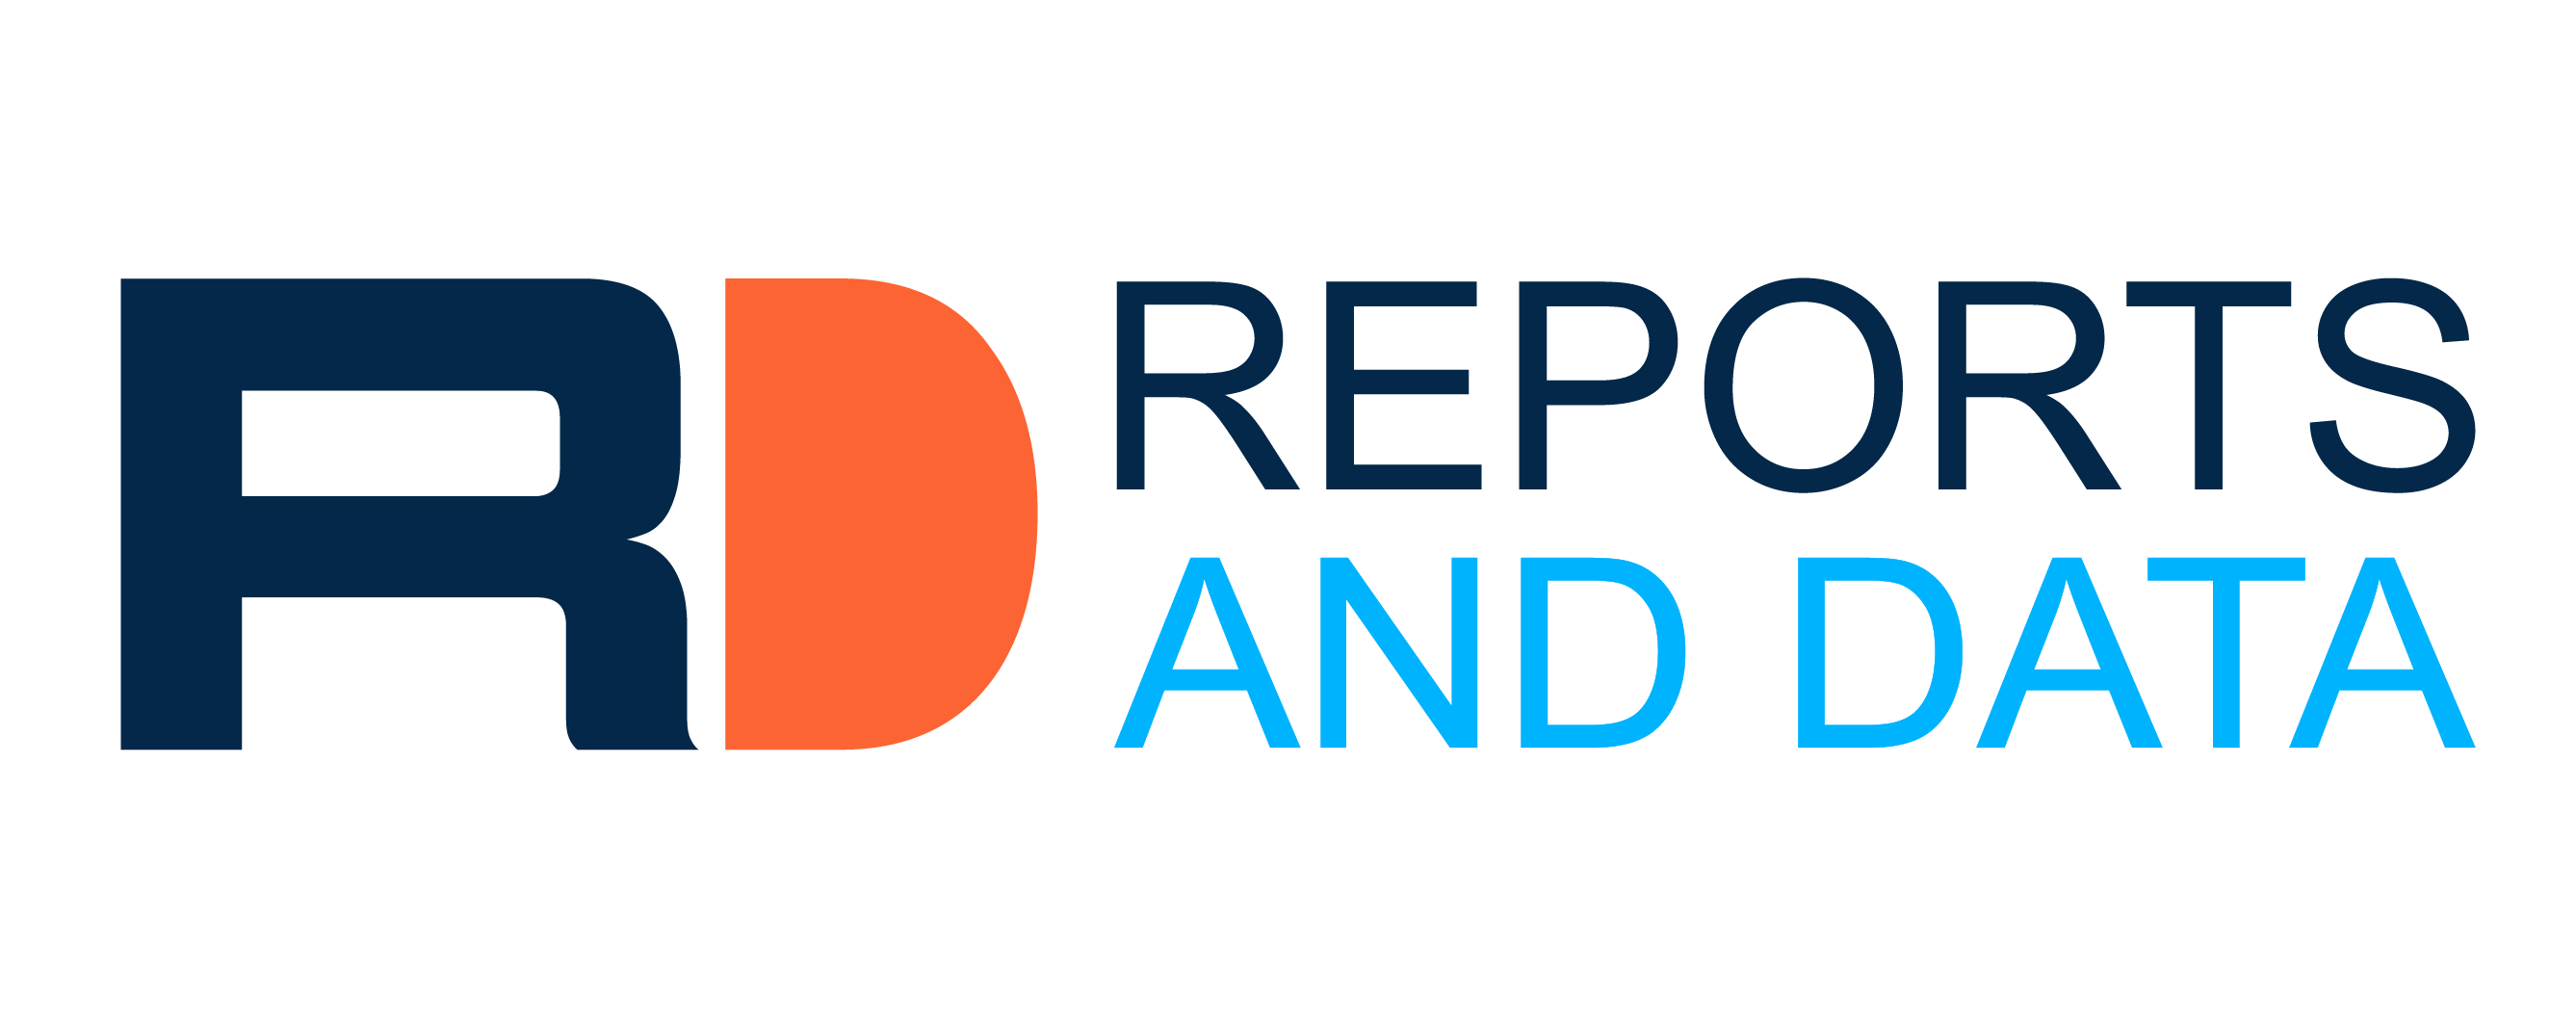 Orthopedic Soft Tissue Repair Market Size & Share (2019-2026) | Top Players - Stryker, Arthrex, Zimmer Biomet, DePuy Synthes, CONMED Corporation, Zimmer Biomet Holdings